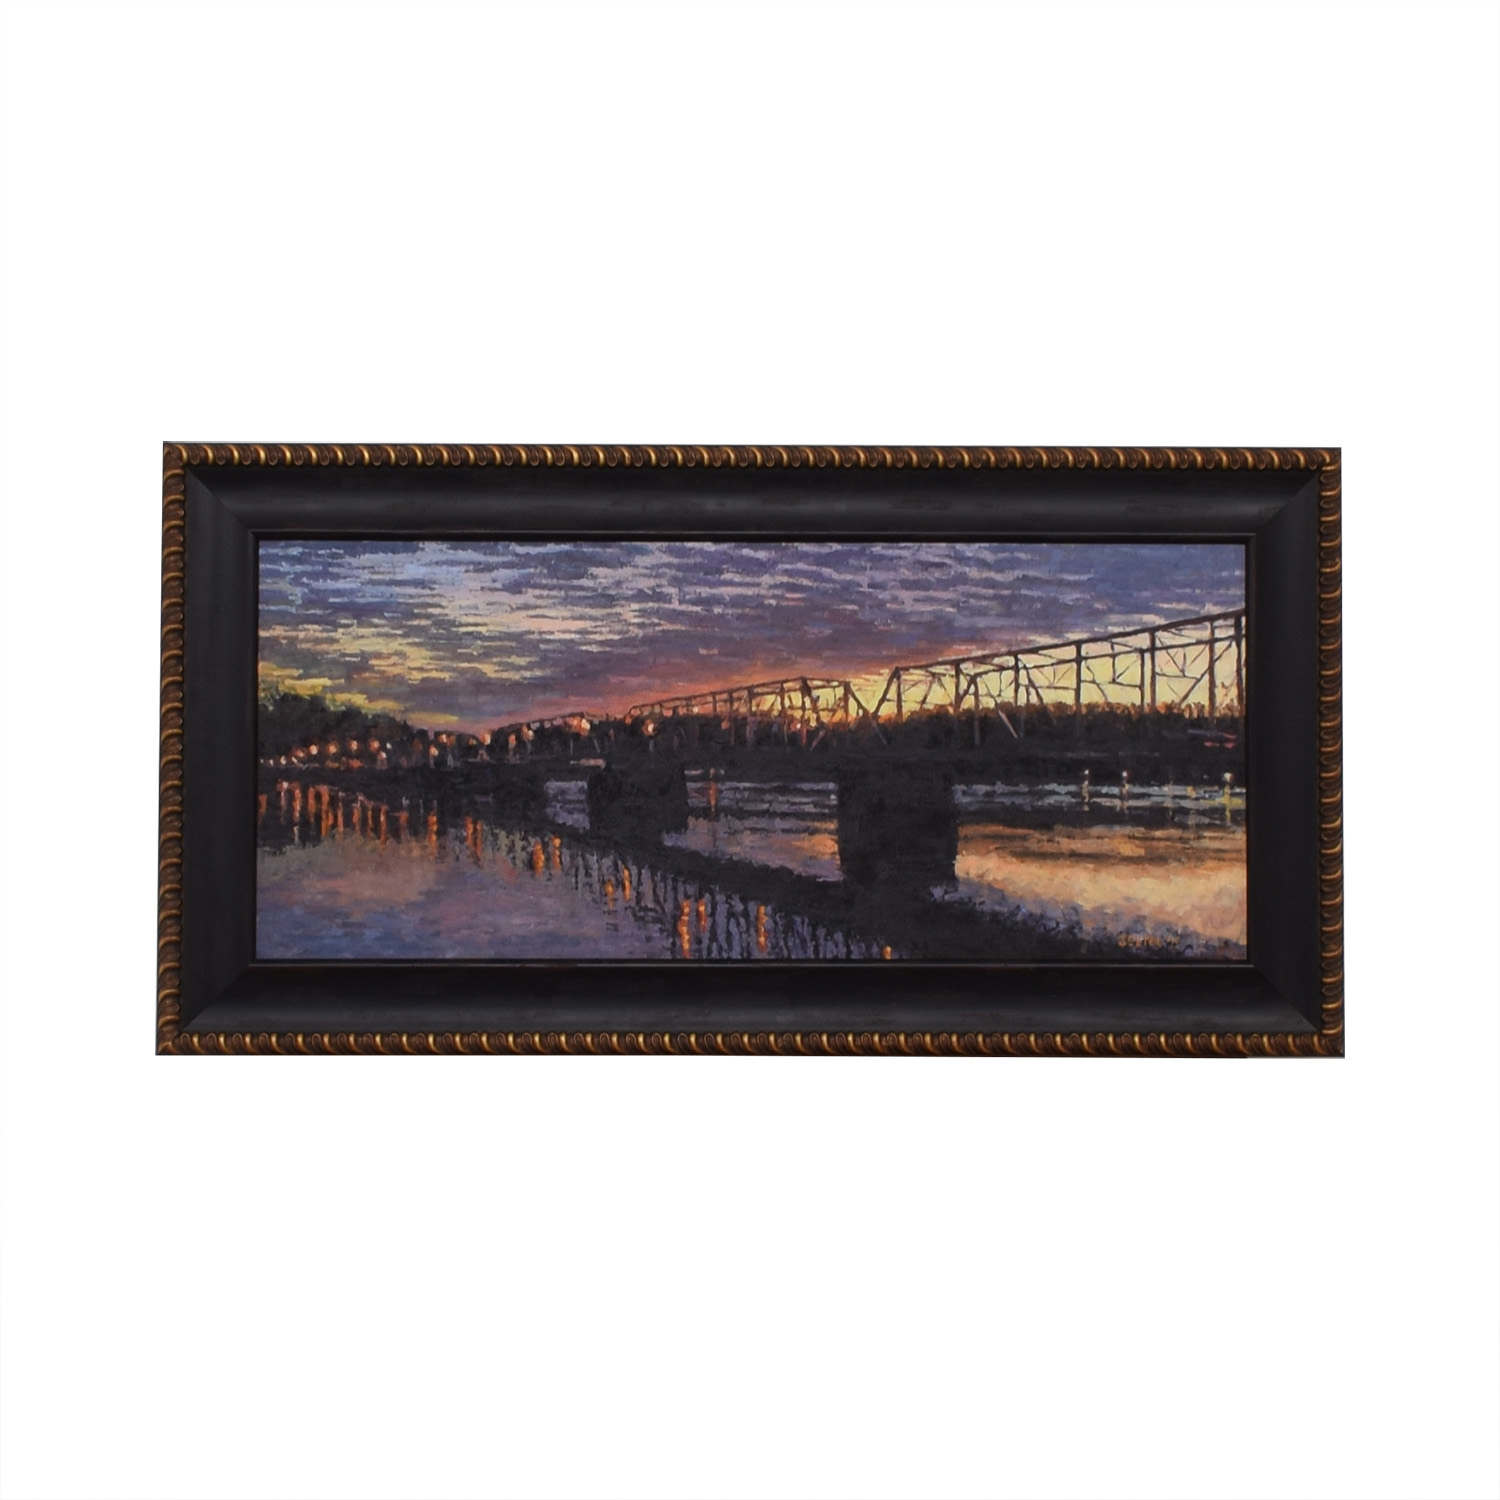 Sexton Signed Original Bridge over River at Sunset Oil Painting